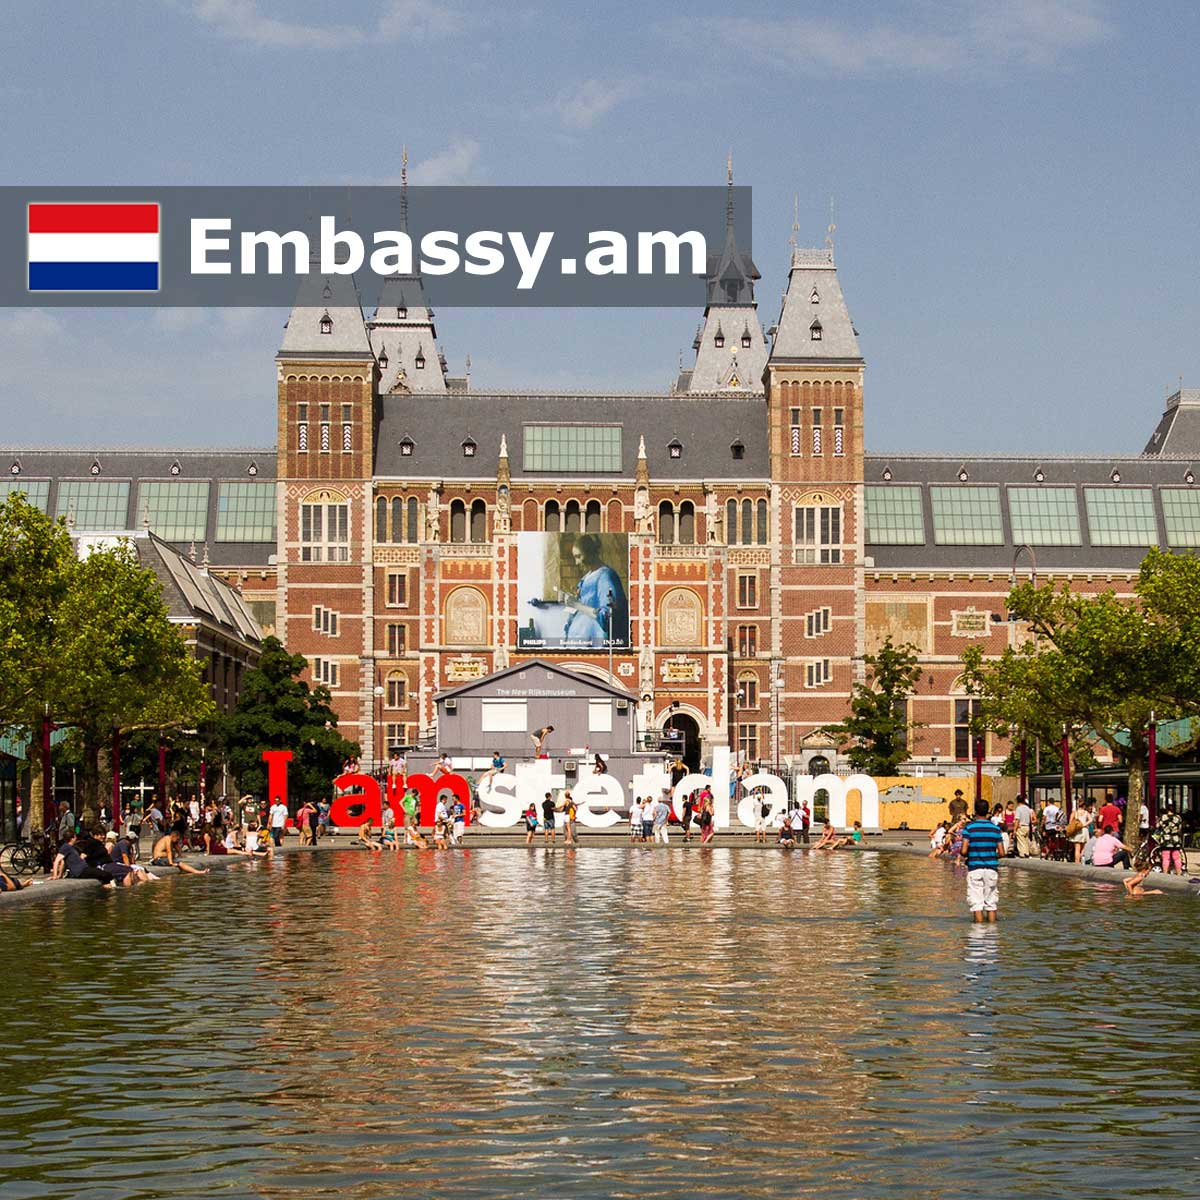 Amsterdam - Hotels in the Netherlands - Embassy.am